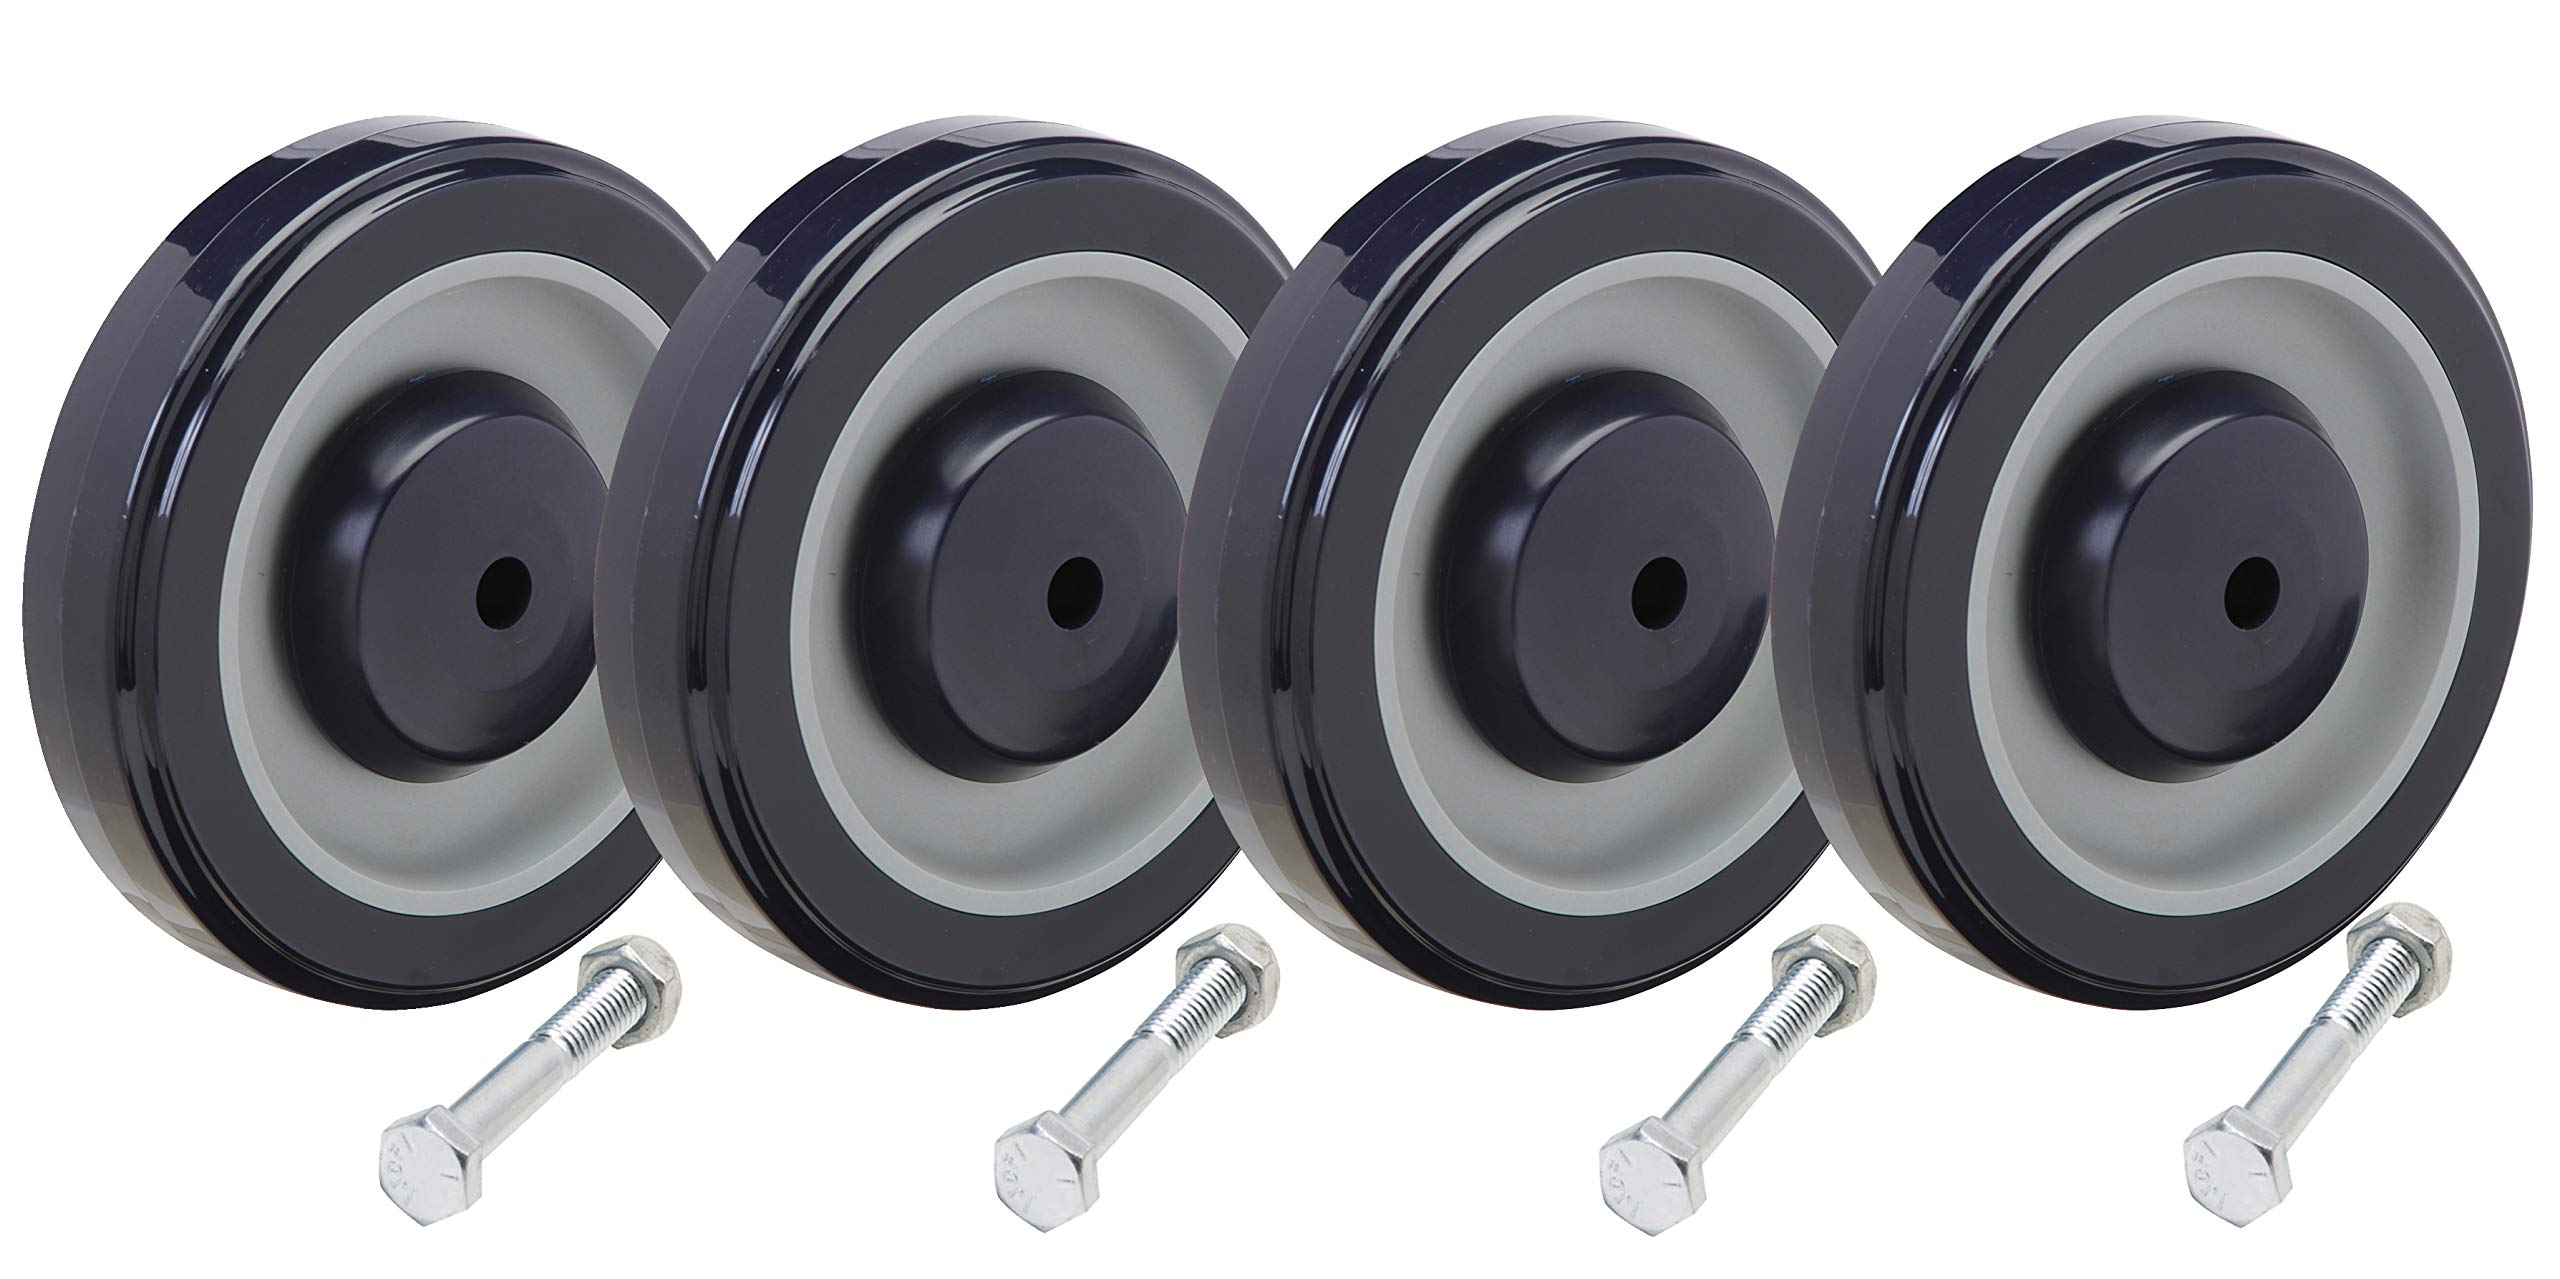 Shopping Cart Wheel Replacement Kit Including 5/16'' Axle Bolts: Set of 4